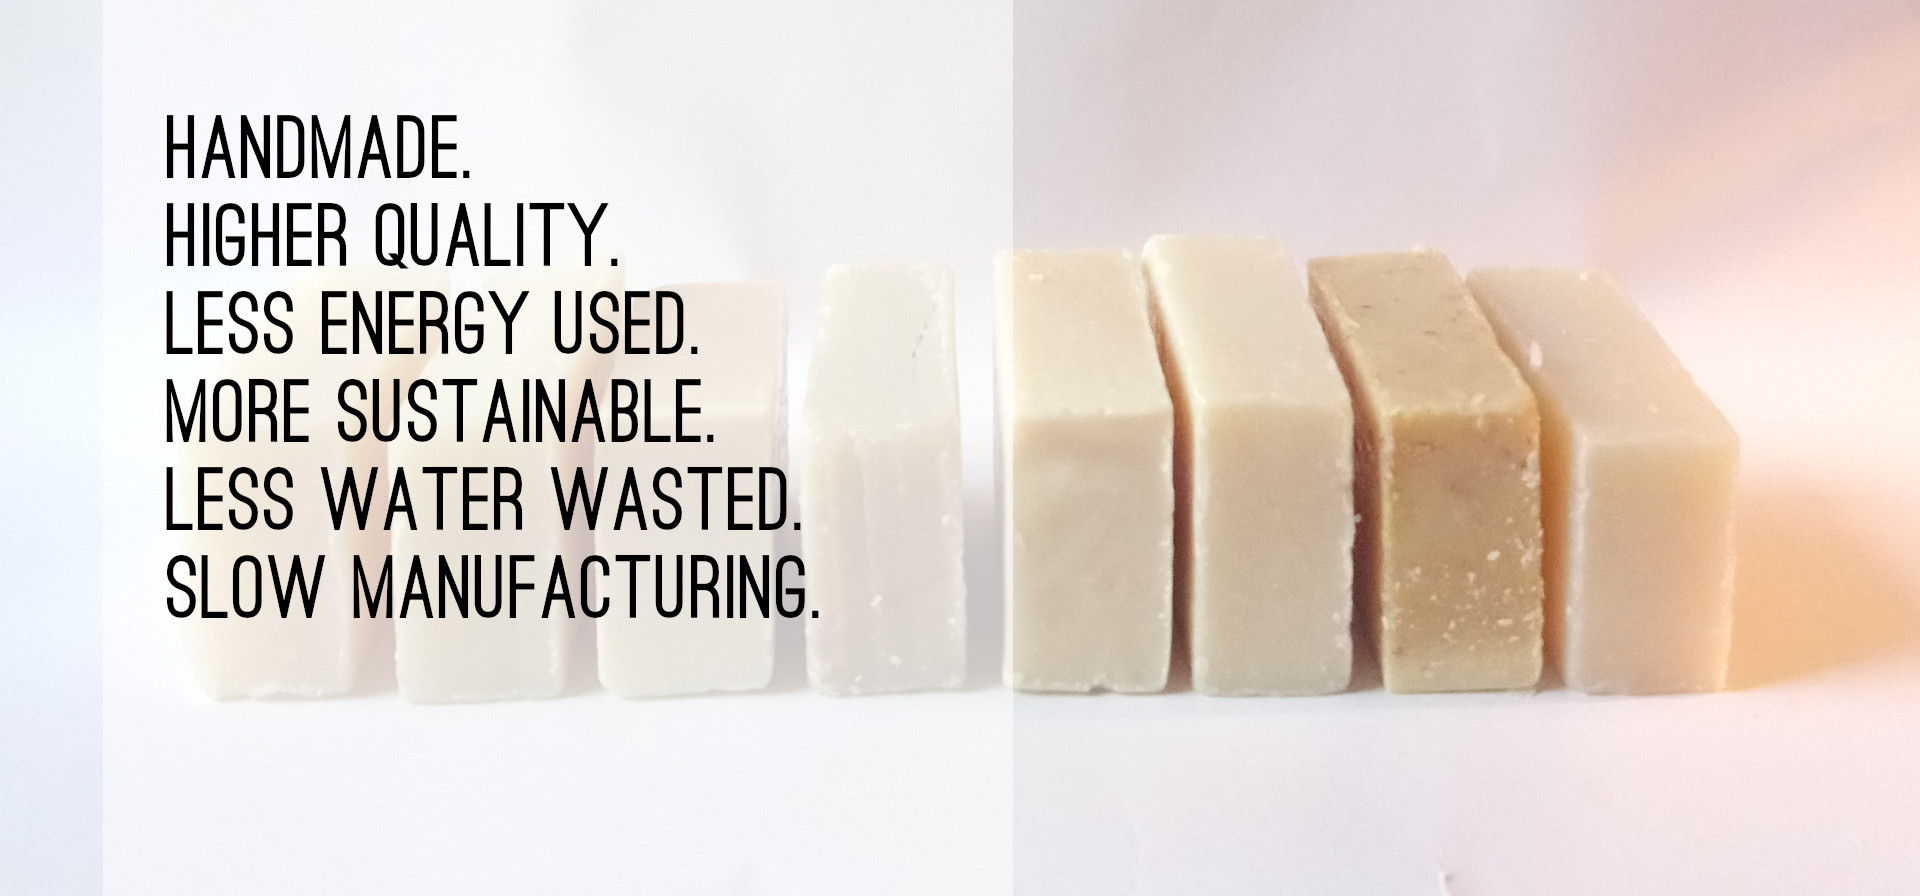 Handmade soap is made better, higher quality and artisan ethical standards with improved grade and purity of cold-pressed oils